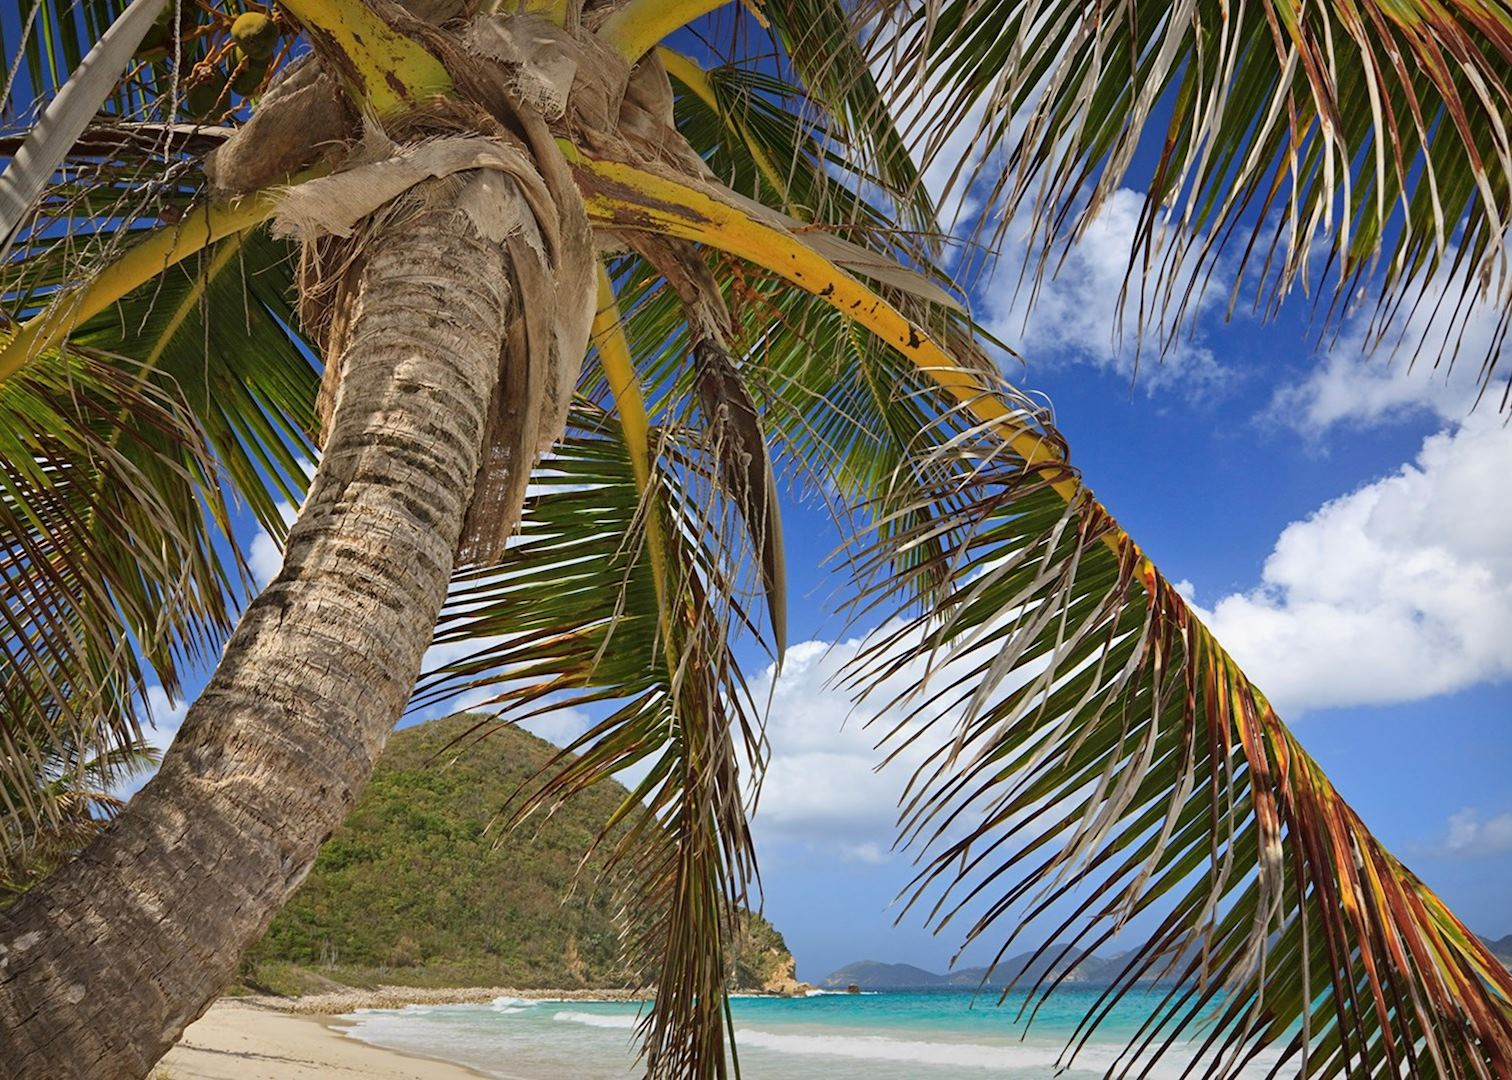 Jul 21 2017 The Caribbean Development Bank Cdb Has Approved A Usd9 28 Million Loan To Support Government Of British Virgin Islands Bvi In